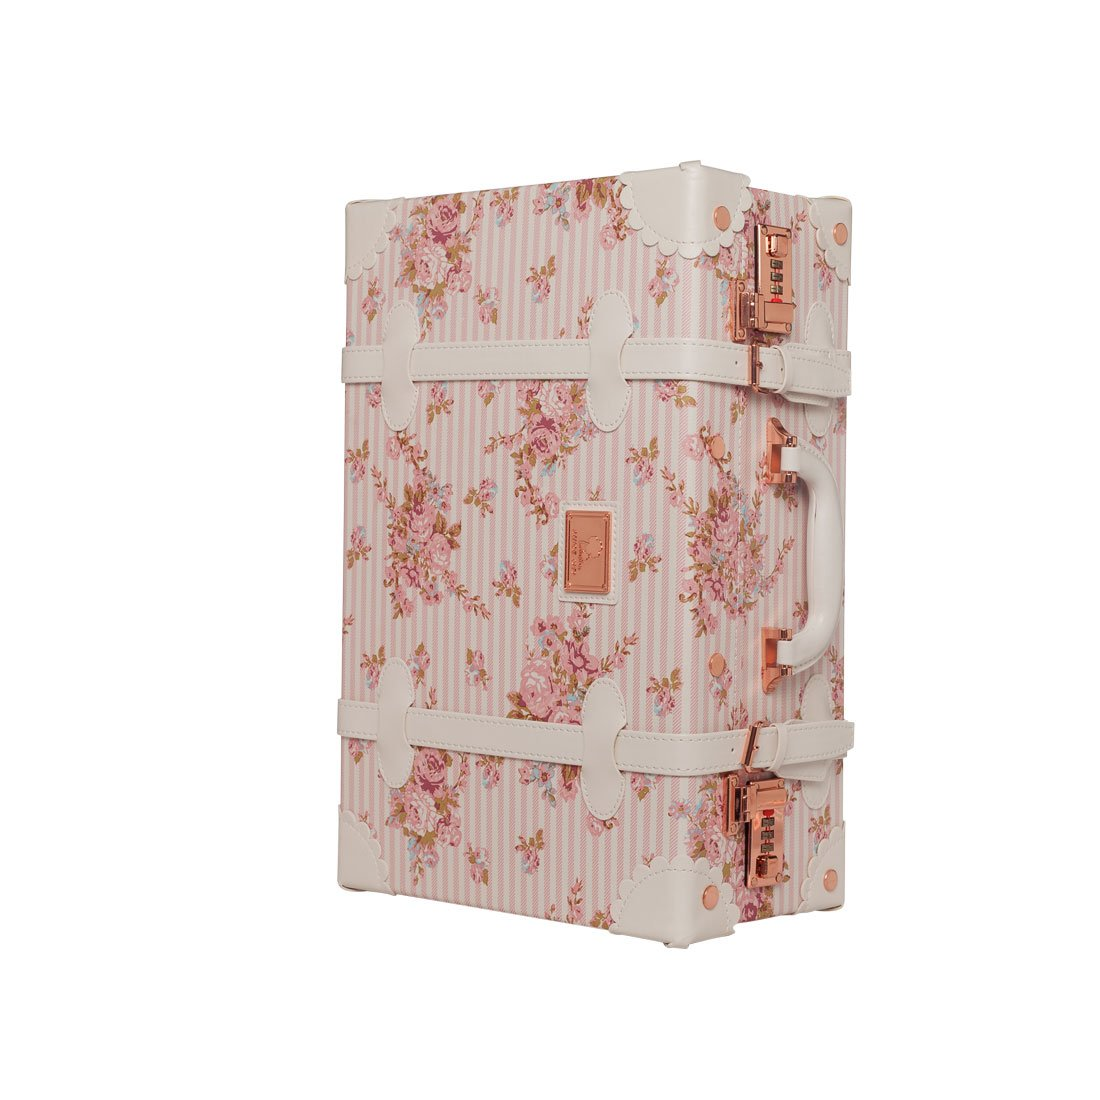 UNIWALKER 16'' 18'' Women Floral Carry On Suitcase Hand Luggage (18'', Pink)